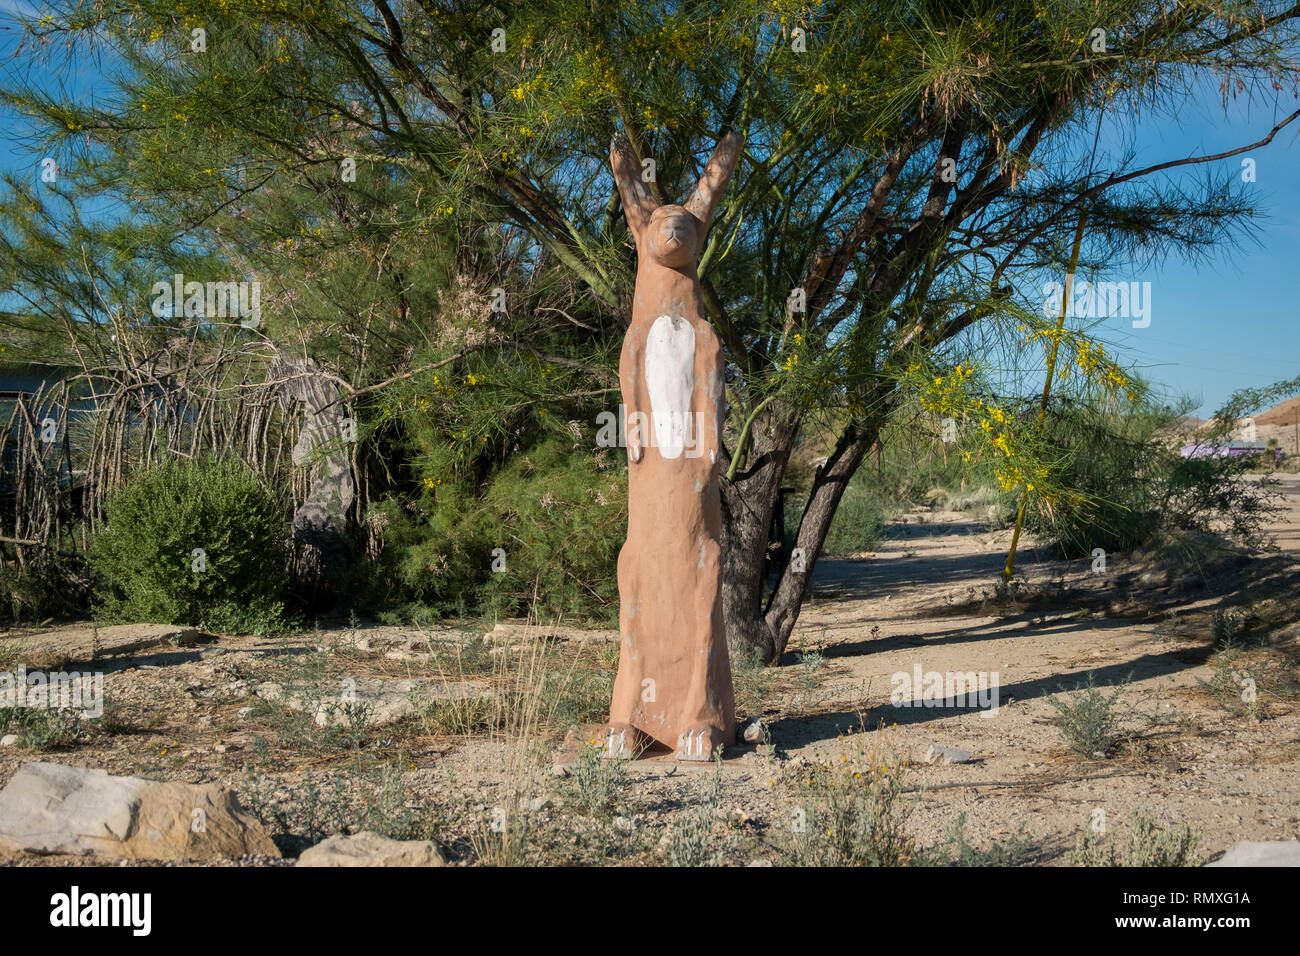 A brown rabbit figure in West Texas. - Stock Image